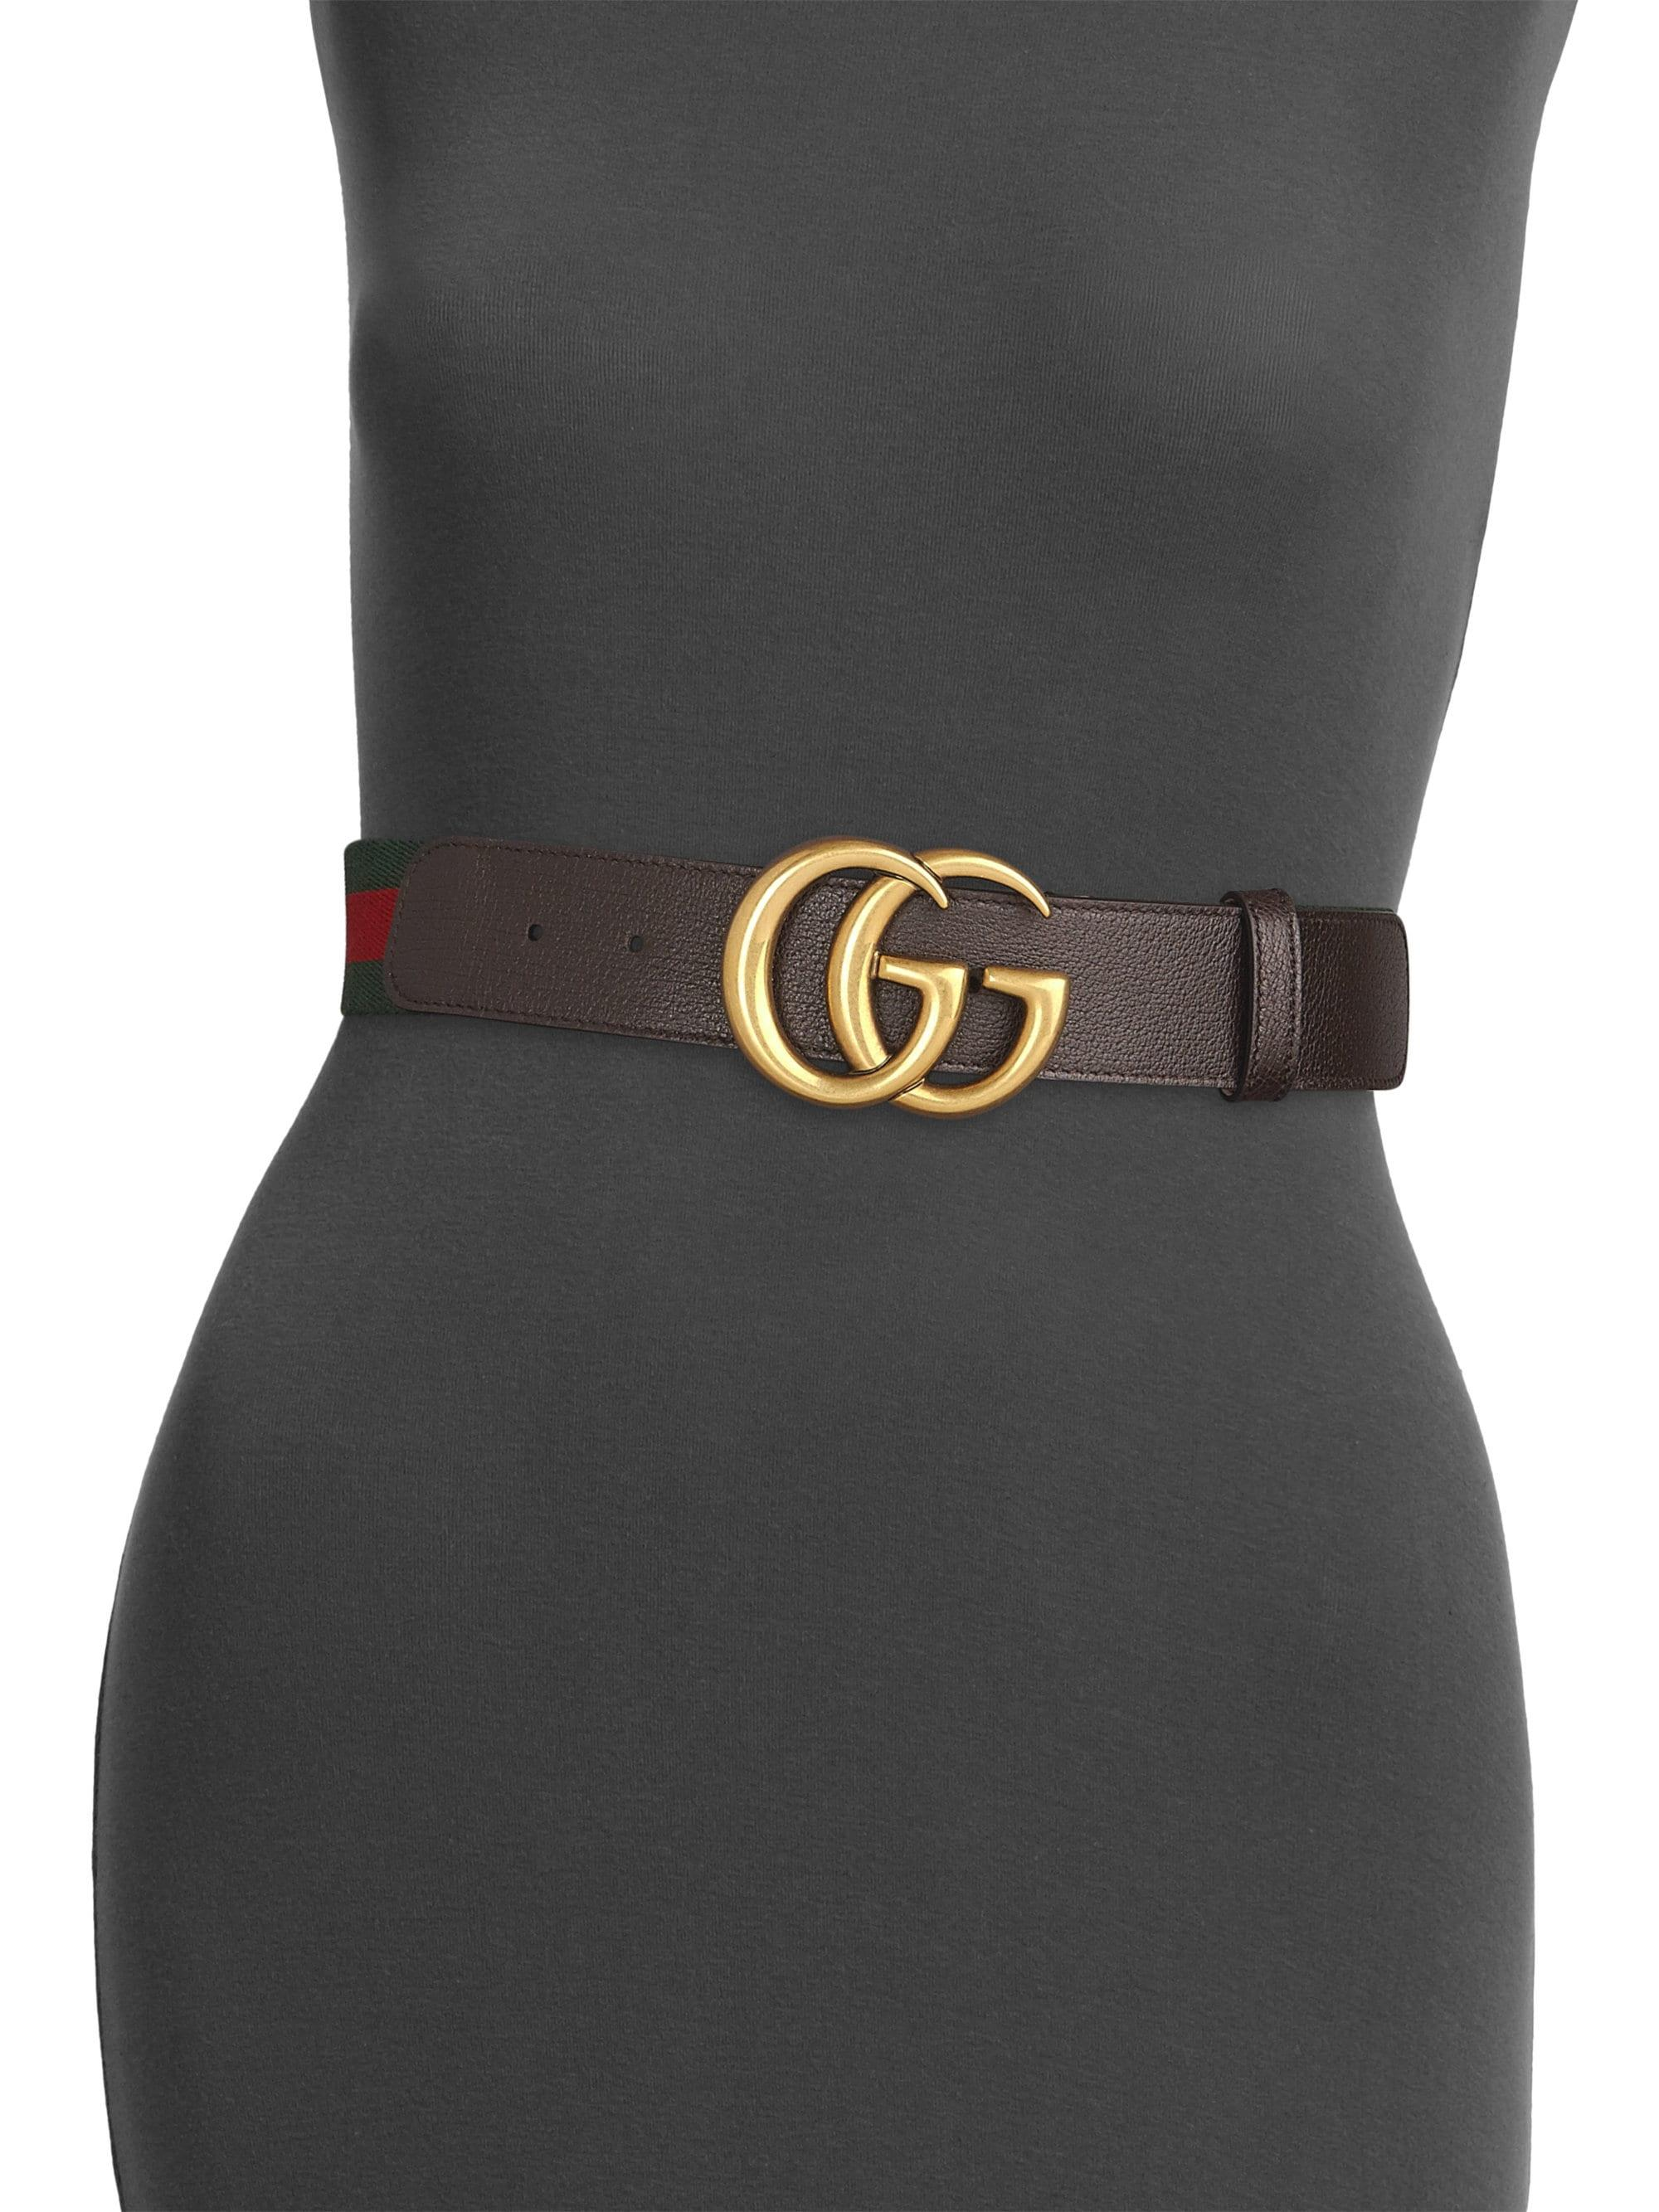 8773faaf0d0 Lyst - Gucci GG Leather   Canvas Belt in Brown